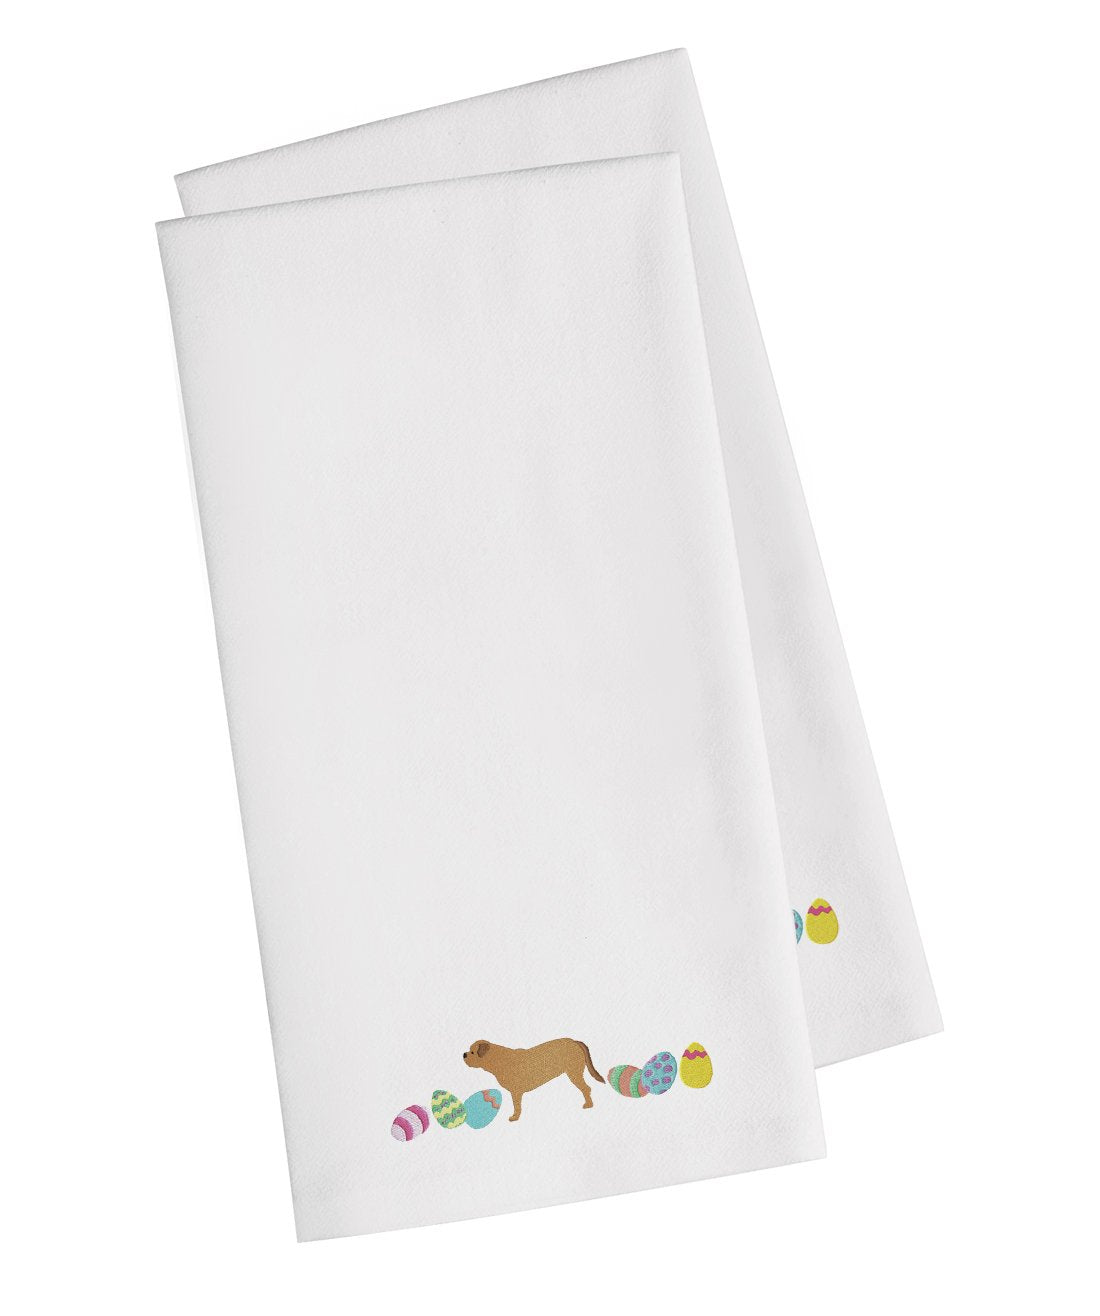 Dogue de Bordeaux Easter White Embroidered Kitchen Towel Set of 2 CK1635WHTWE by Caroline's Treasures